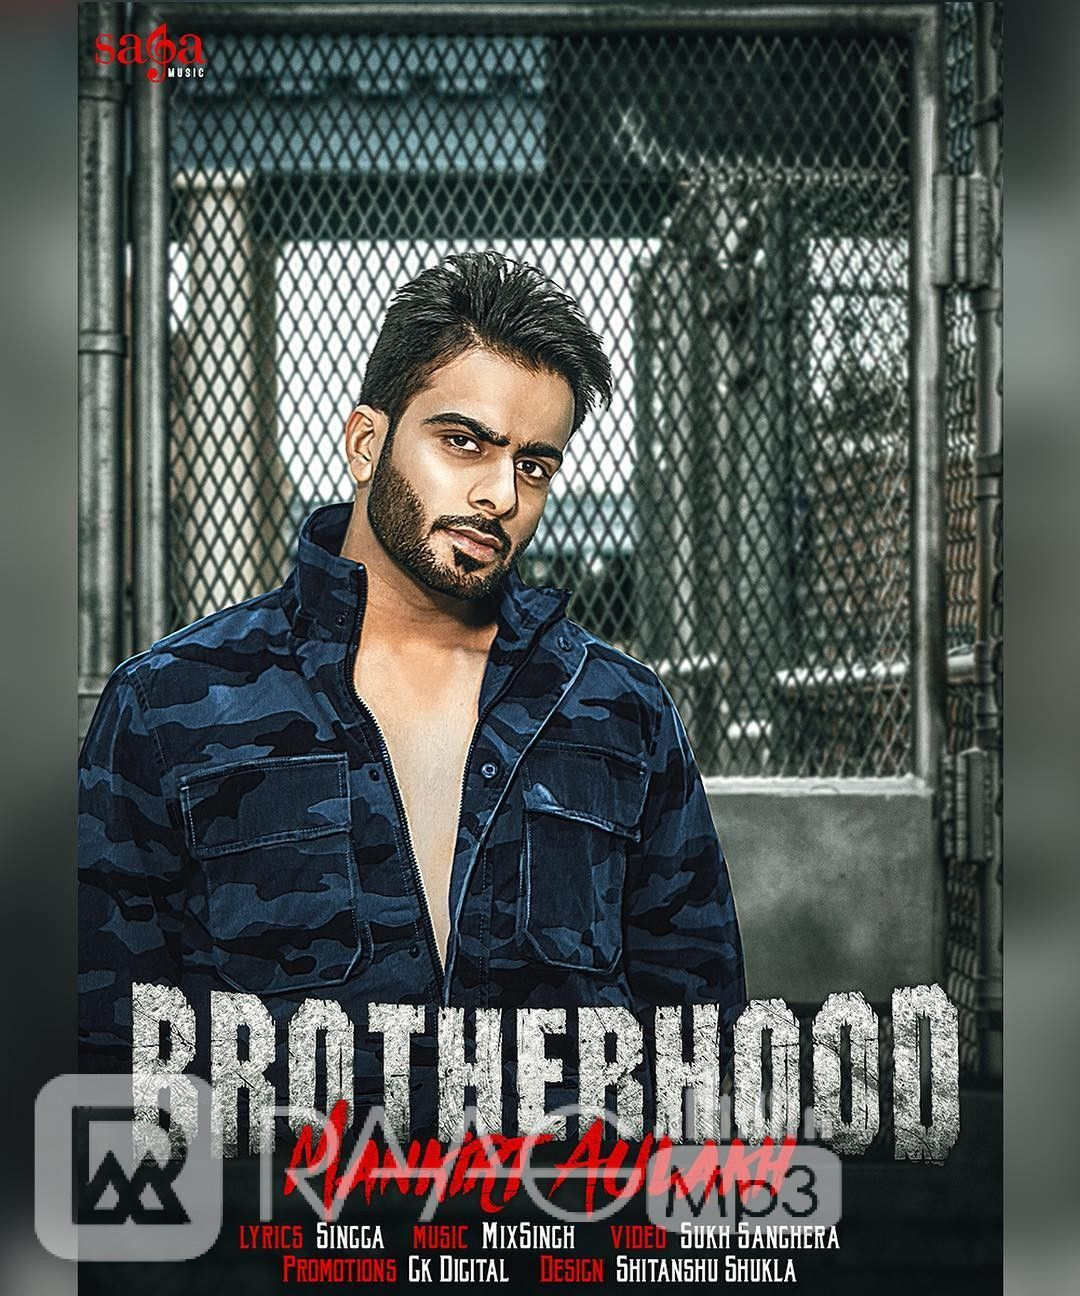 Brotherhood Mp3 By Mankirt Aulakh Released On 4th September 2018 Brotherhood Song Top Punjabi Song Lyrics By Sing Mp3 Song Download New Song Download Mp3 Song